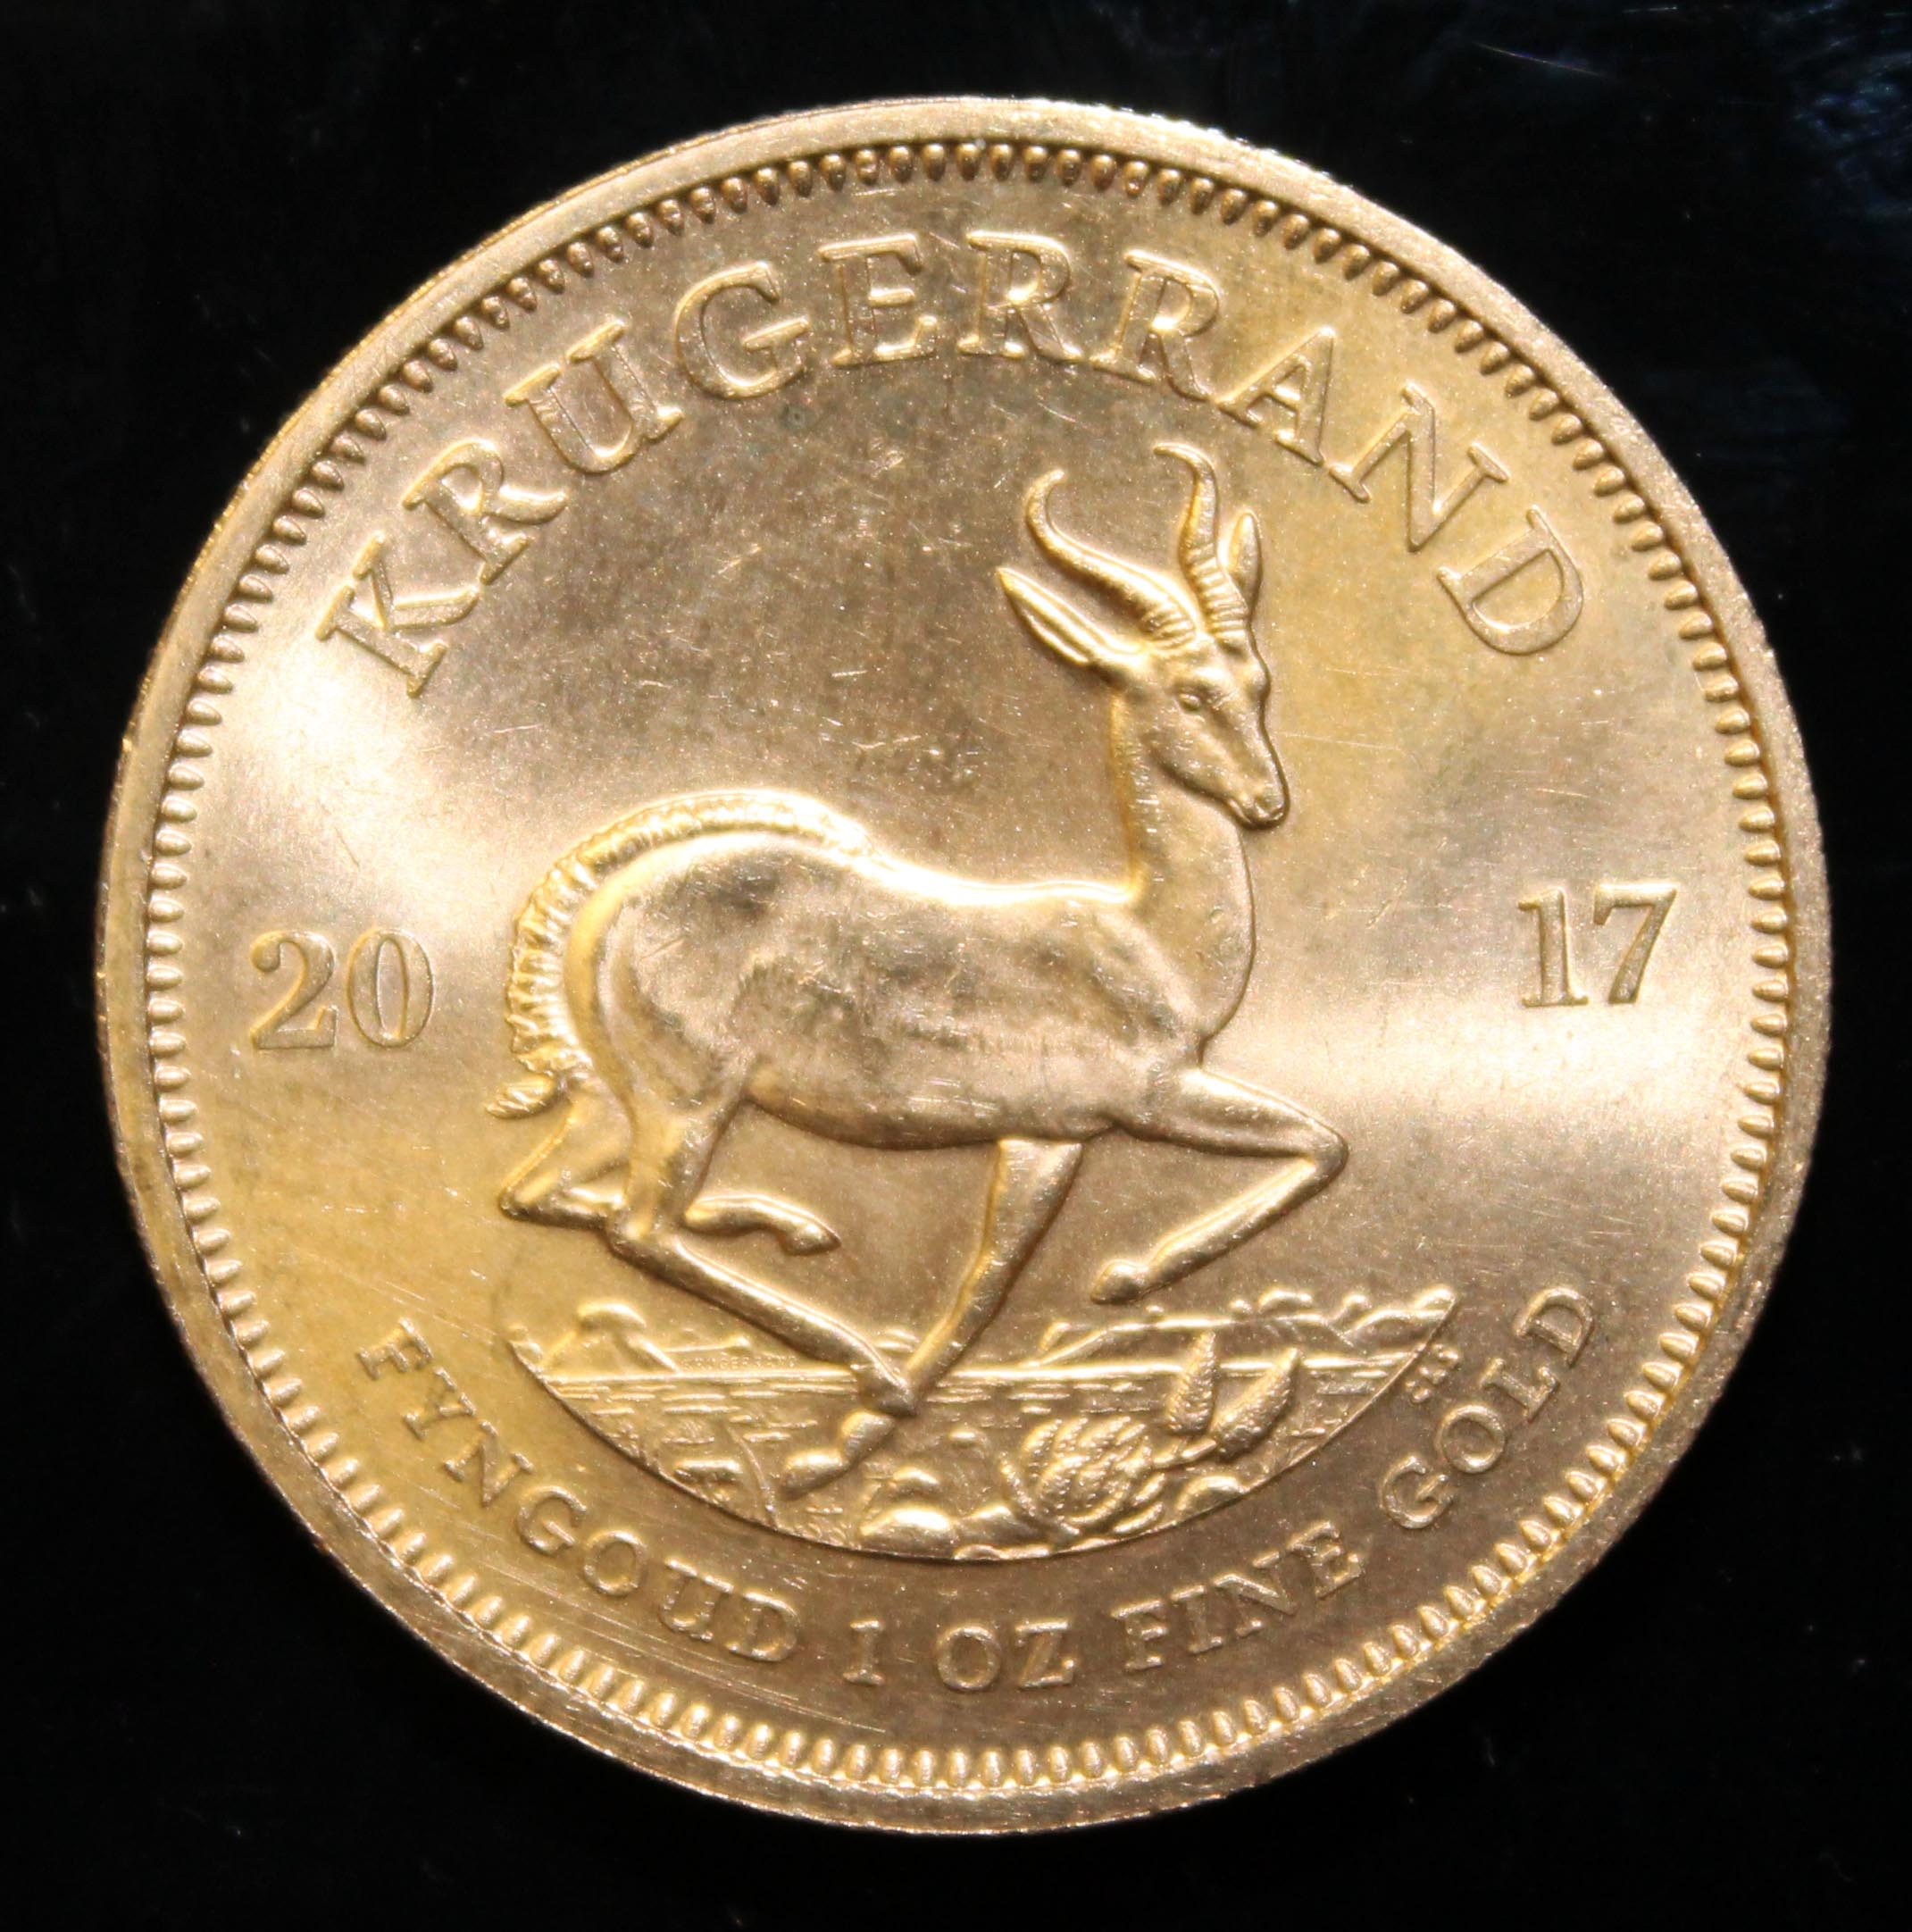 South Africa, 2017 Krugerrand, 1 oz. fine gold (91.67%) ONLY 10% BUYER'S PREMIUM (INCLUSIVE OF - Image 2 of 2